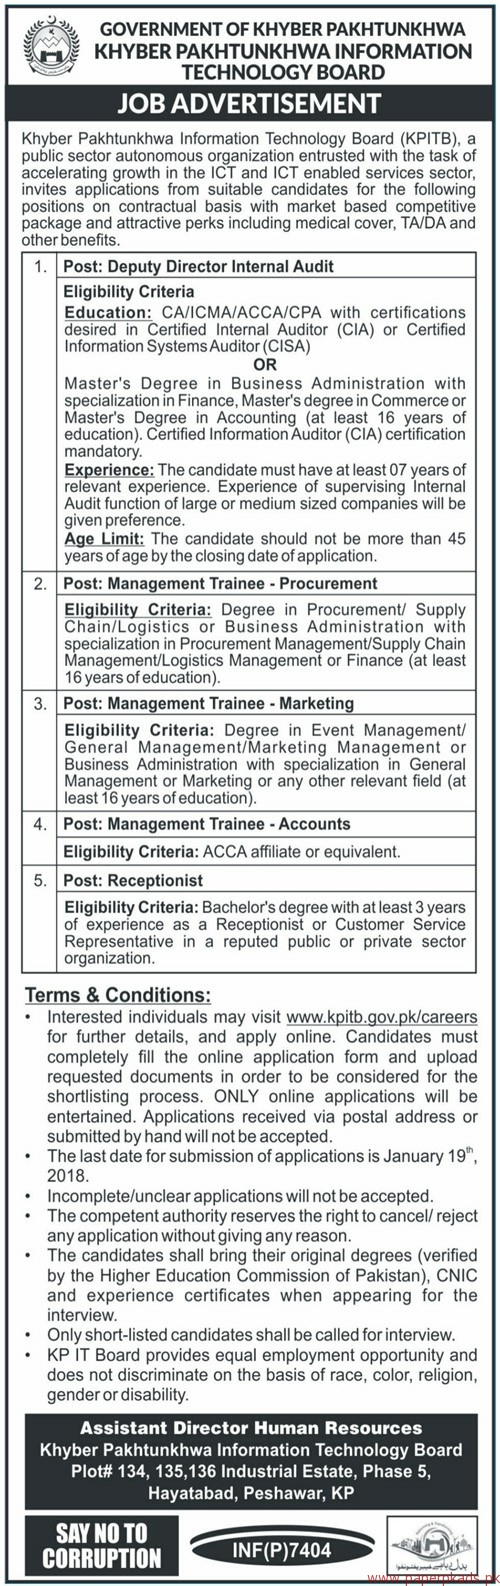 Government of KPK - Khyber Pakhtunkhwa Information Technology Board Jobs 2017